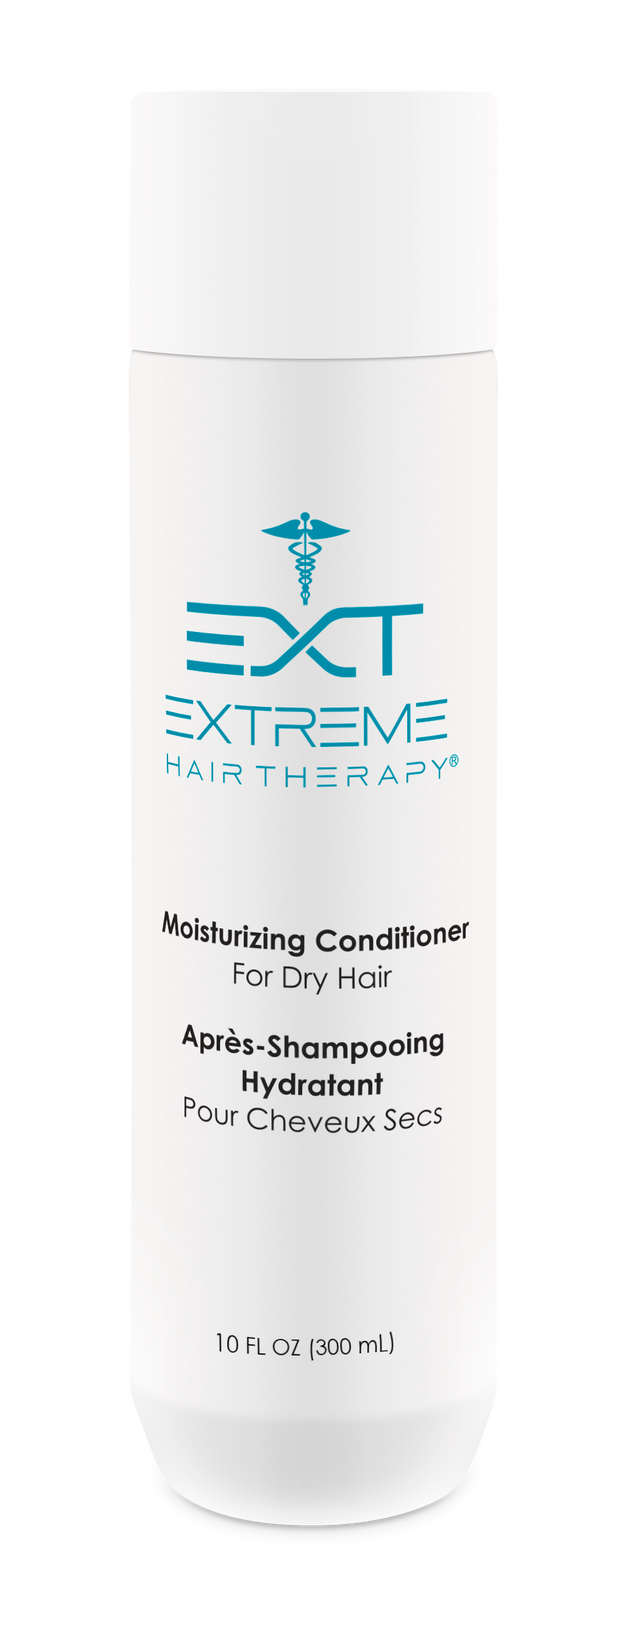 Men's EXT® Hair Regrowth At Home Treatment Kit